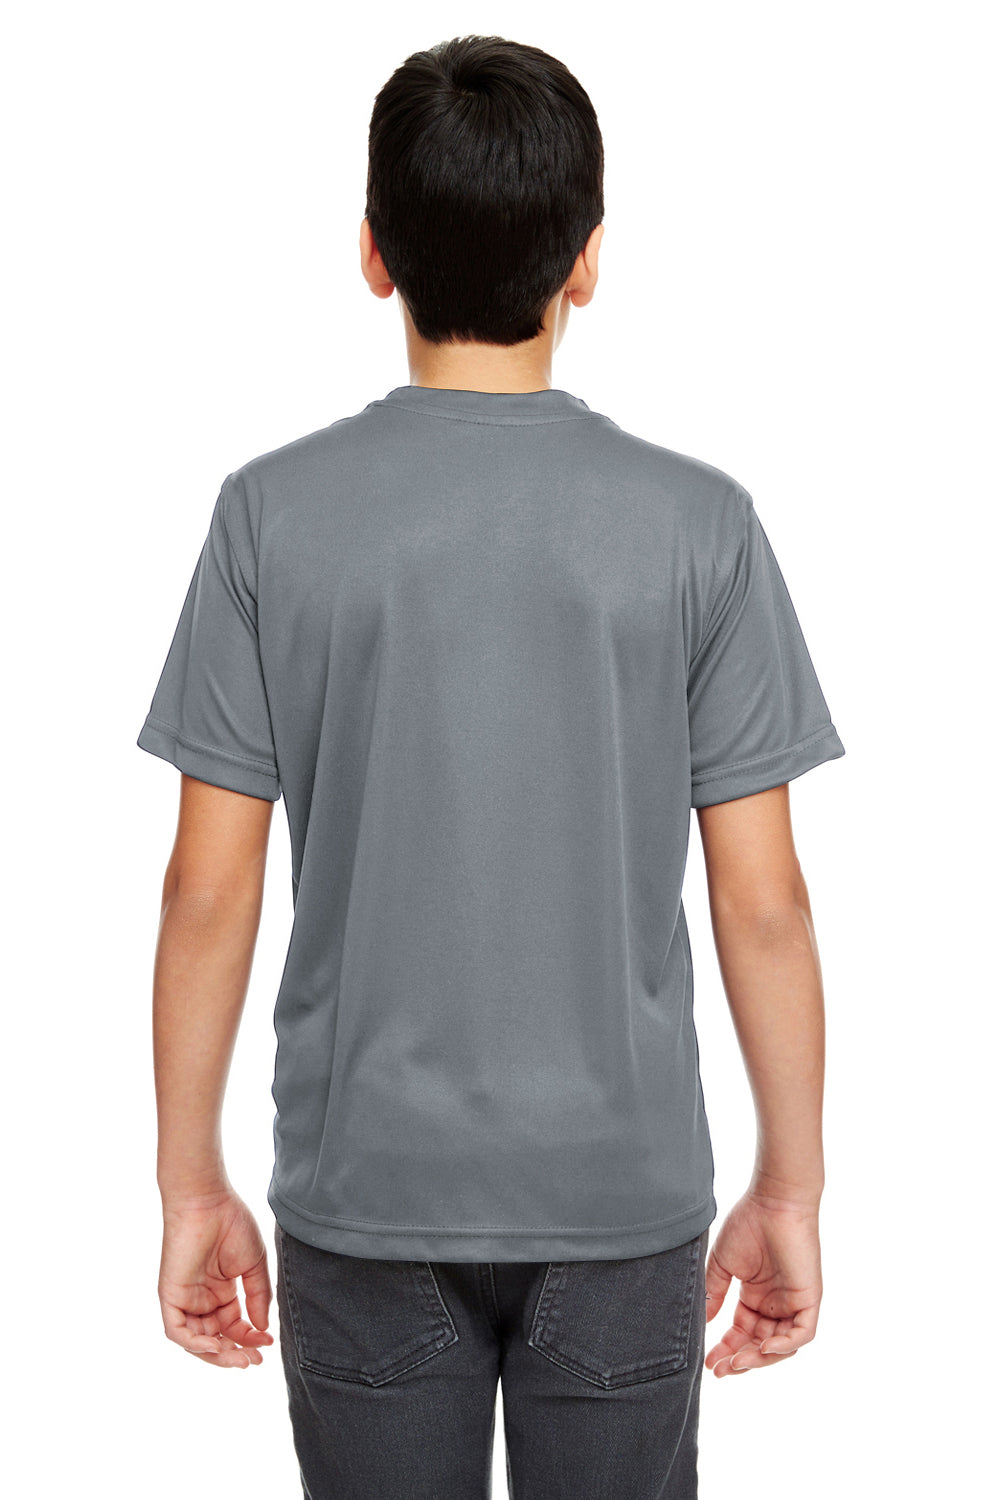 UltraClub 8620Y Youth Cool & Dry Performance Moisture Wicking Short Sleeve Crewneck T-Shirt Charcoal Grey Back